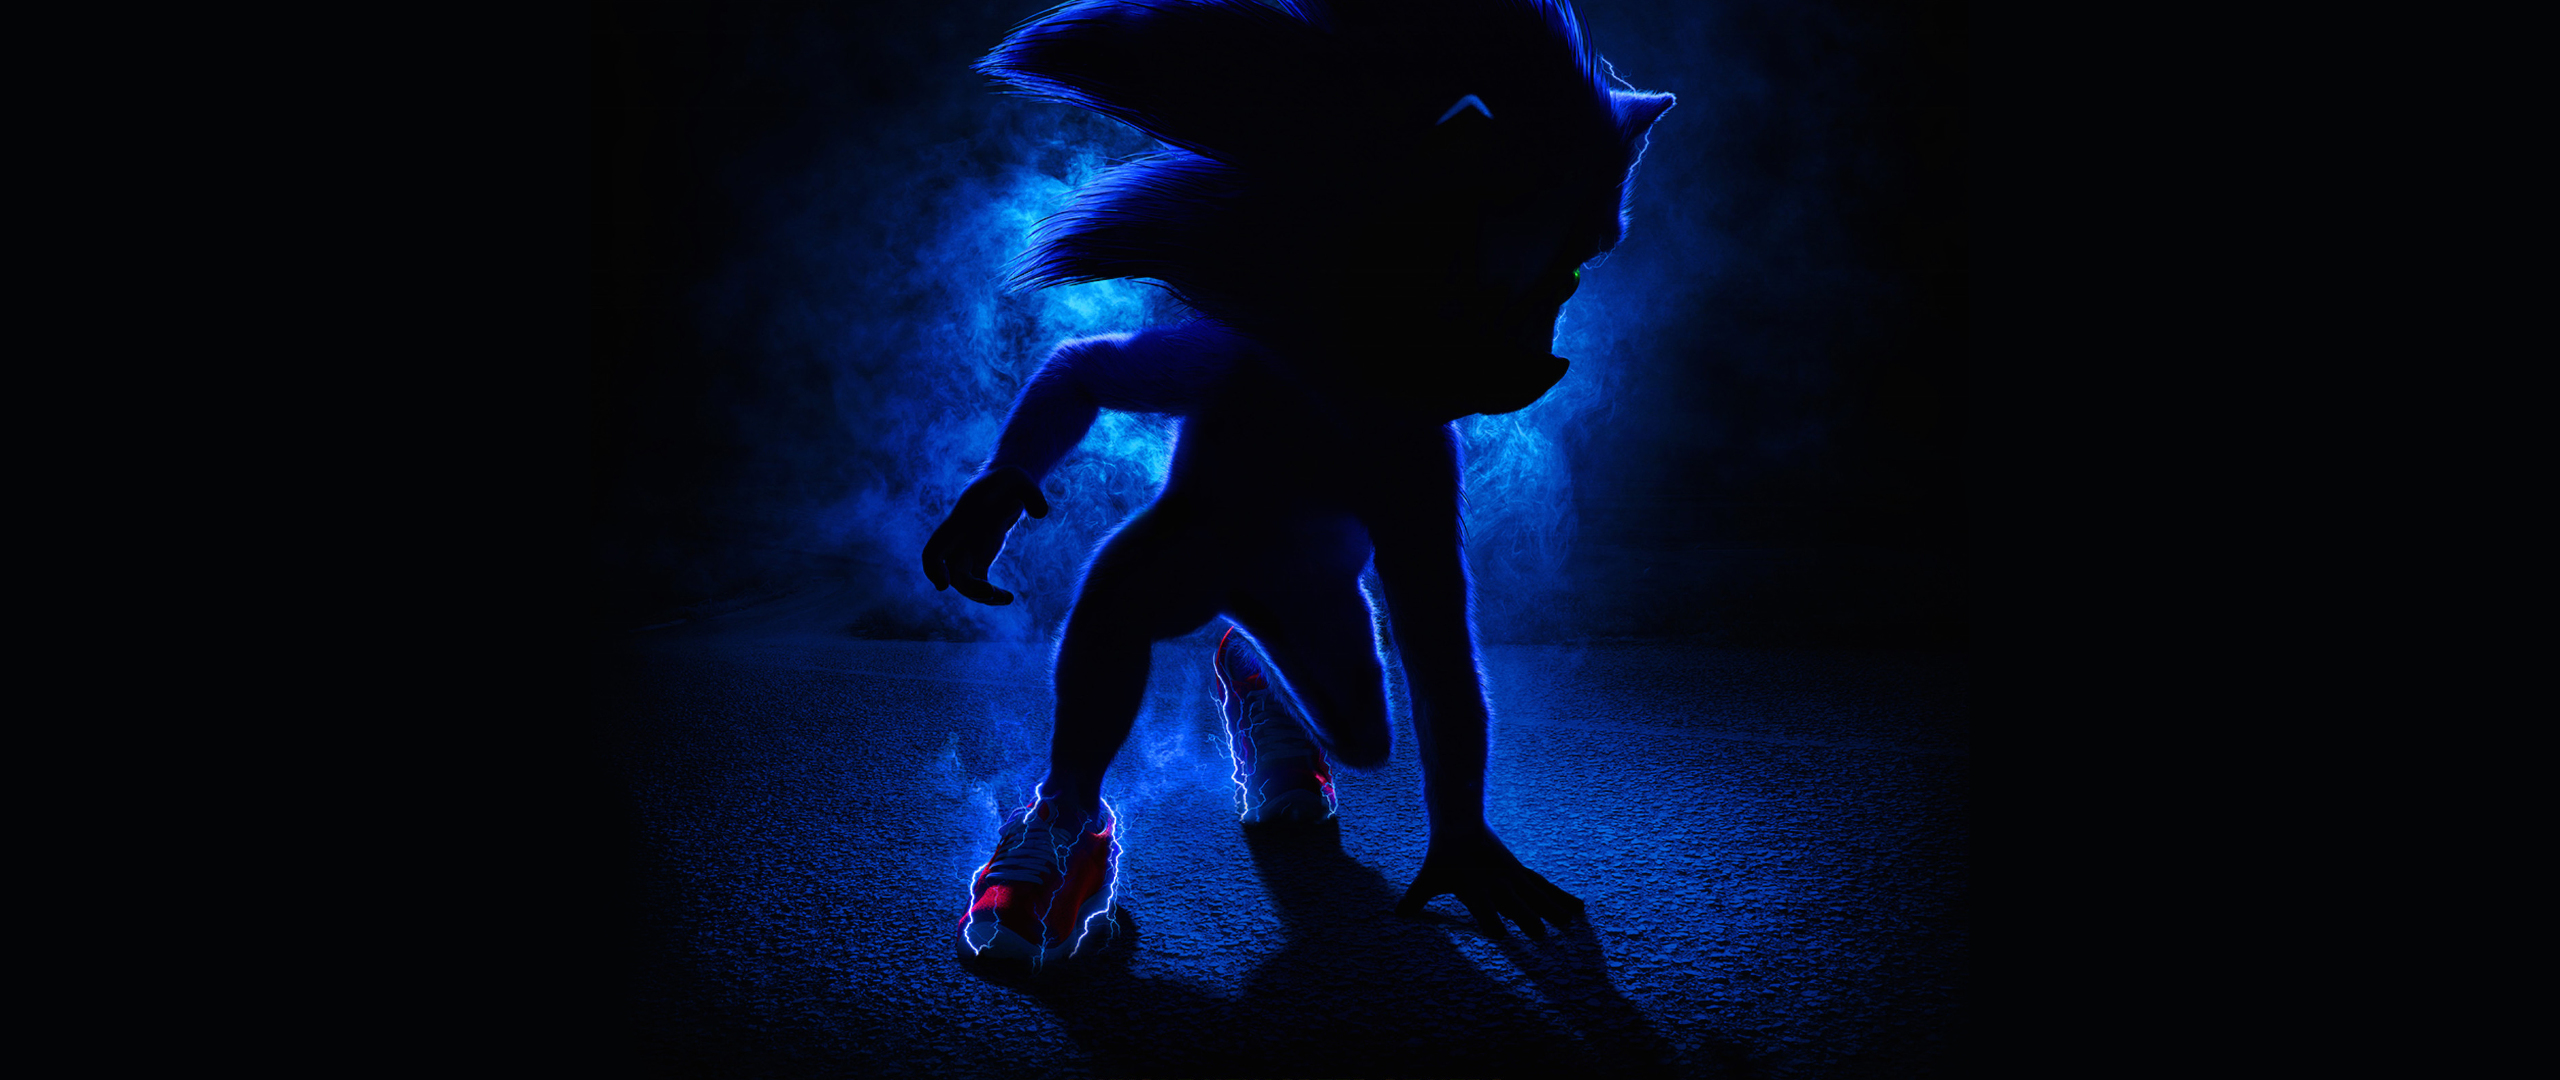 Movie Poster 2019: Sonic The Hedgehog 2019 Movie Poster, HD 4K Wallpaper